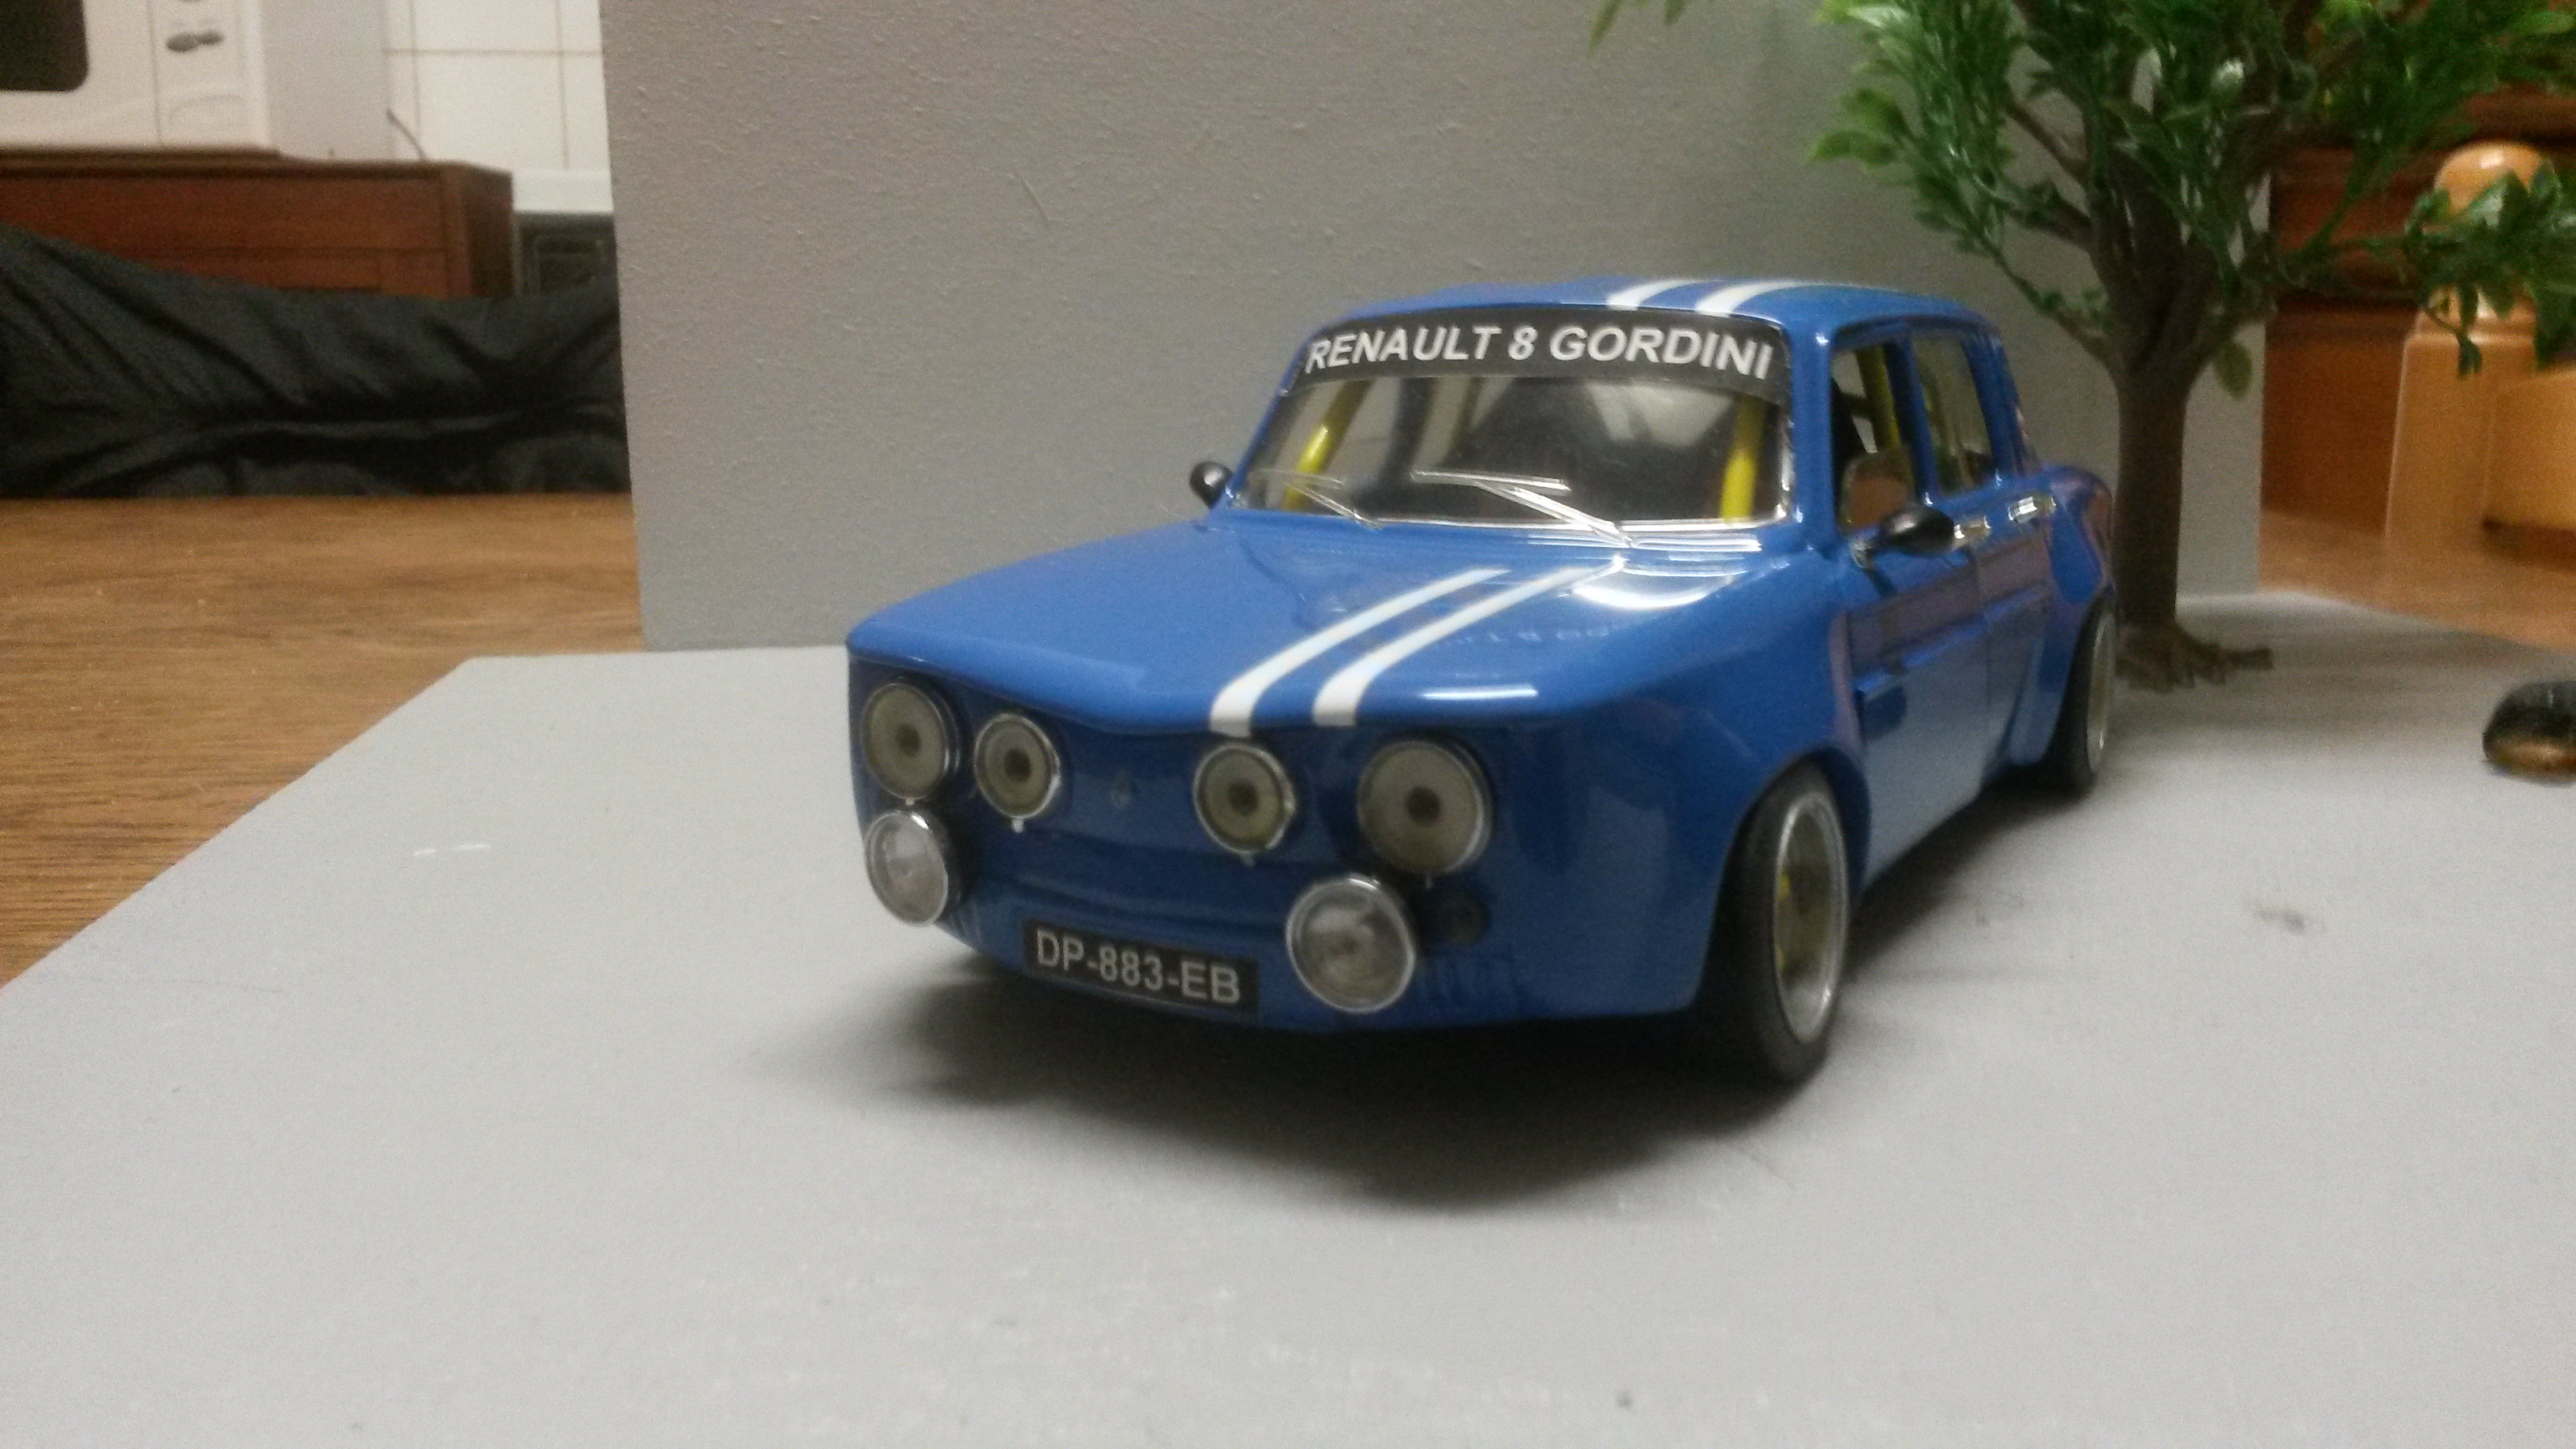 Renault 8 Gordini bleu kit large groupe A tuning . Renault 8 Gordini bleu kit large groupe A modellauto 1/18